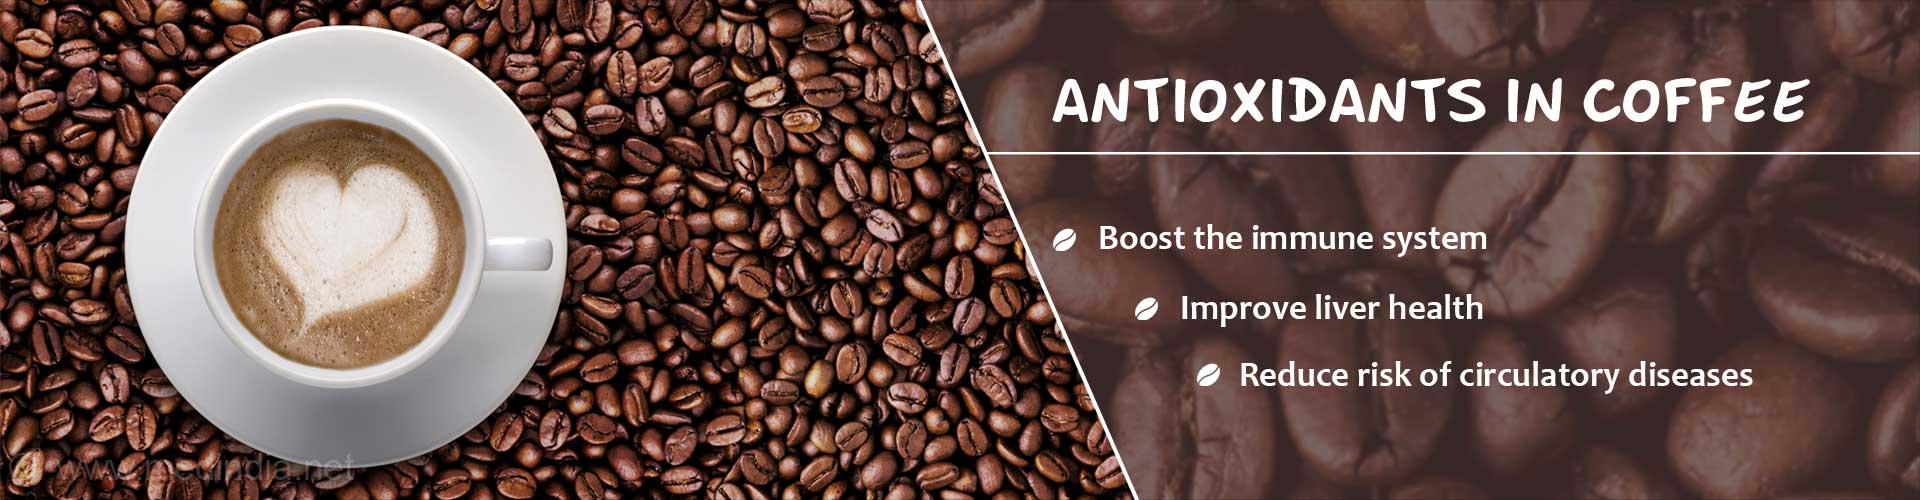 Antioxidants in coffee - boost the immune system - improve liver health - reduce risk of circulatory diseases